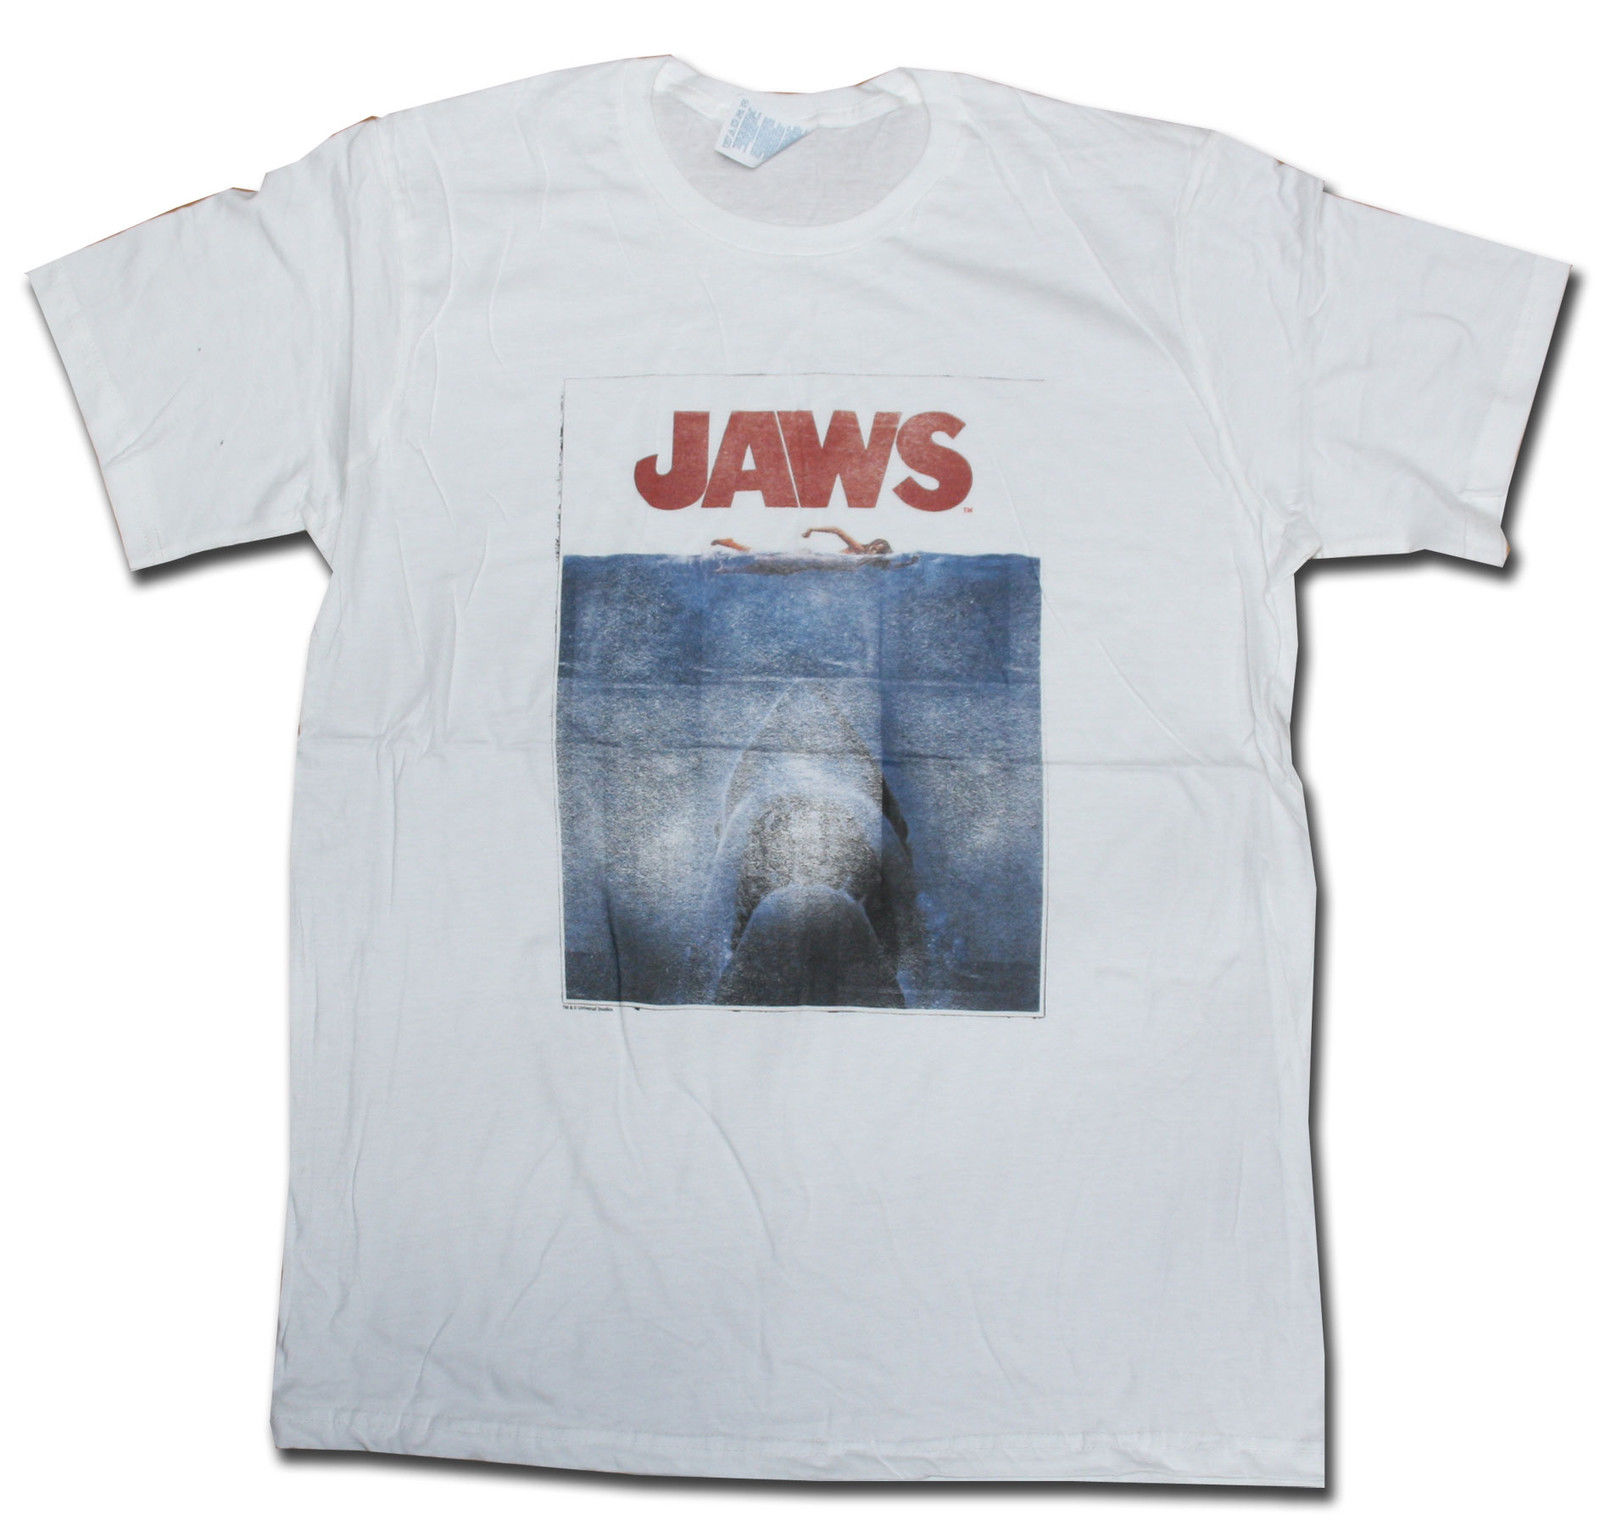 Jaws T Shirt Original White Poster Official Import Classic Movie T Shirt Horror